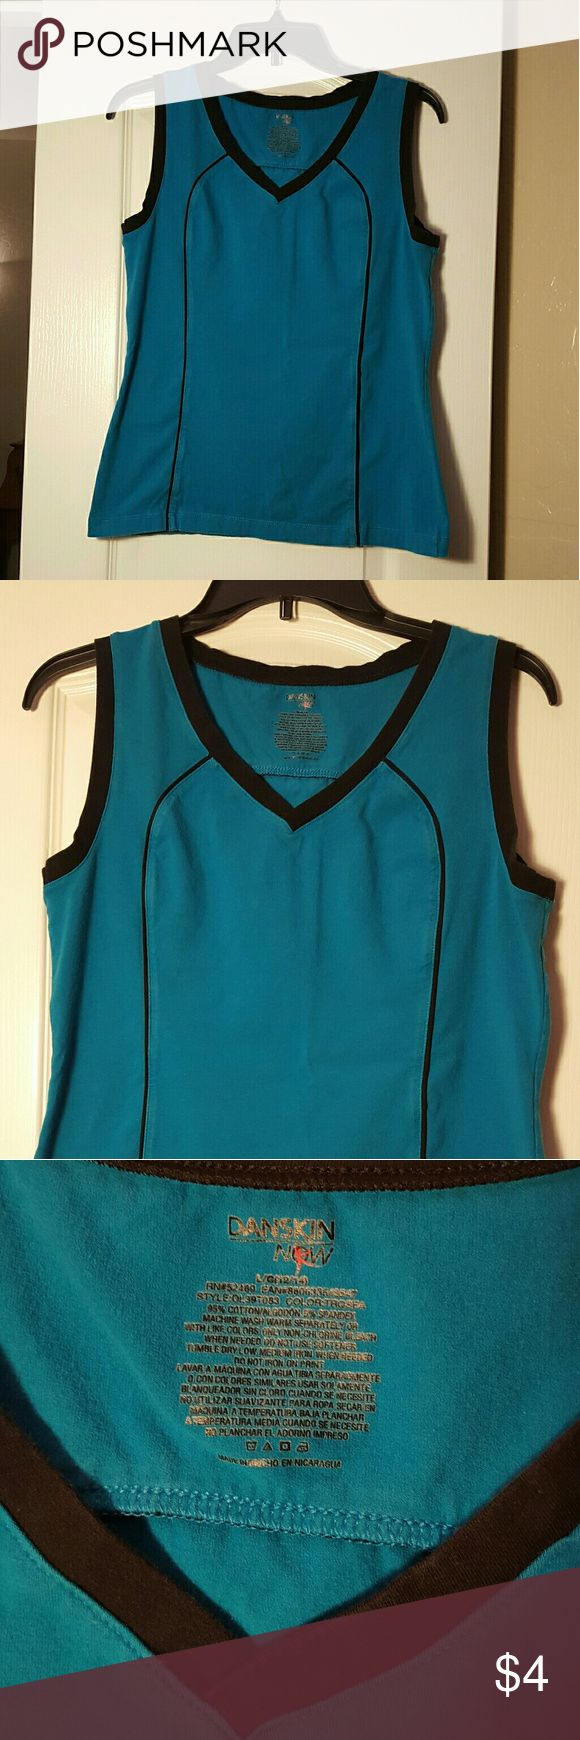 Danskin teal shirt Danskin teal with black trim shirt 95% cotton 5% spandex used condition but lots of exercise stretch left in it. Size Lg.  12/14 Danskin Now Tops